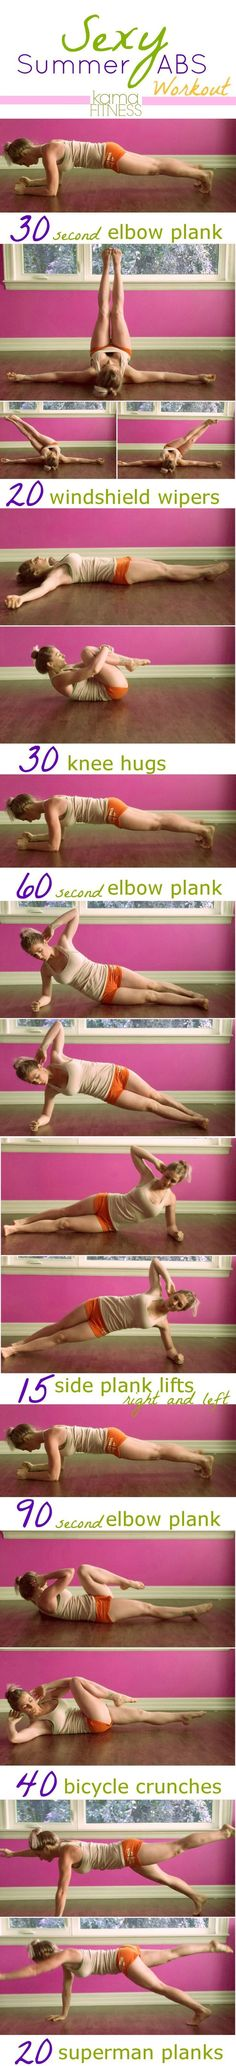 43 Belly Burning Ab Workouts For A Strong & Toned Stomach | BiggerButti